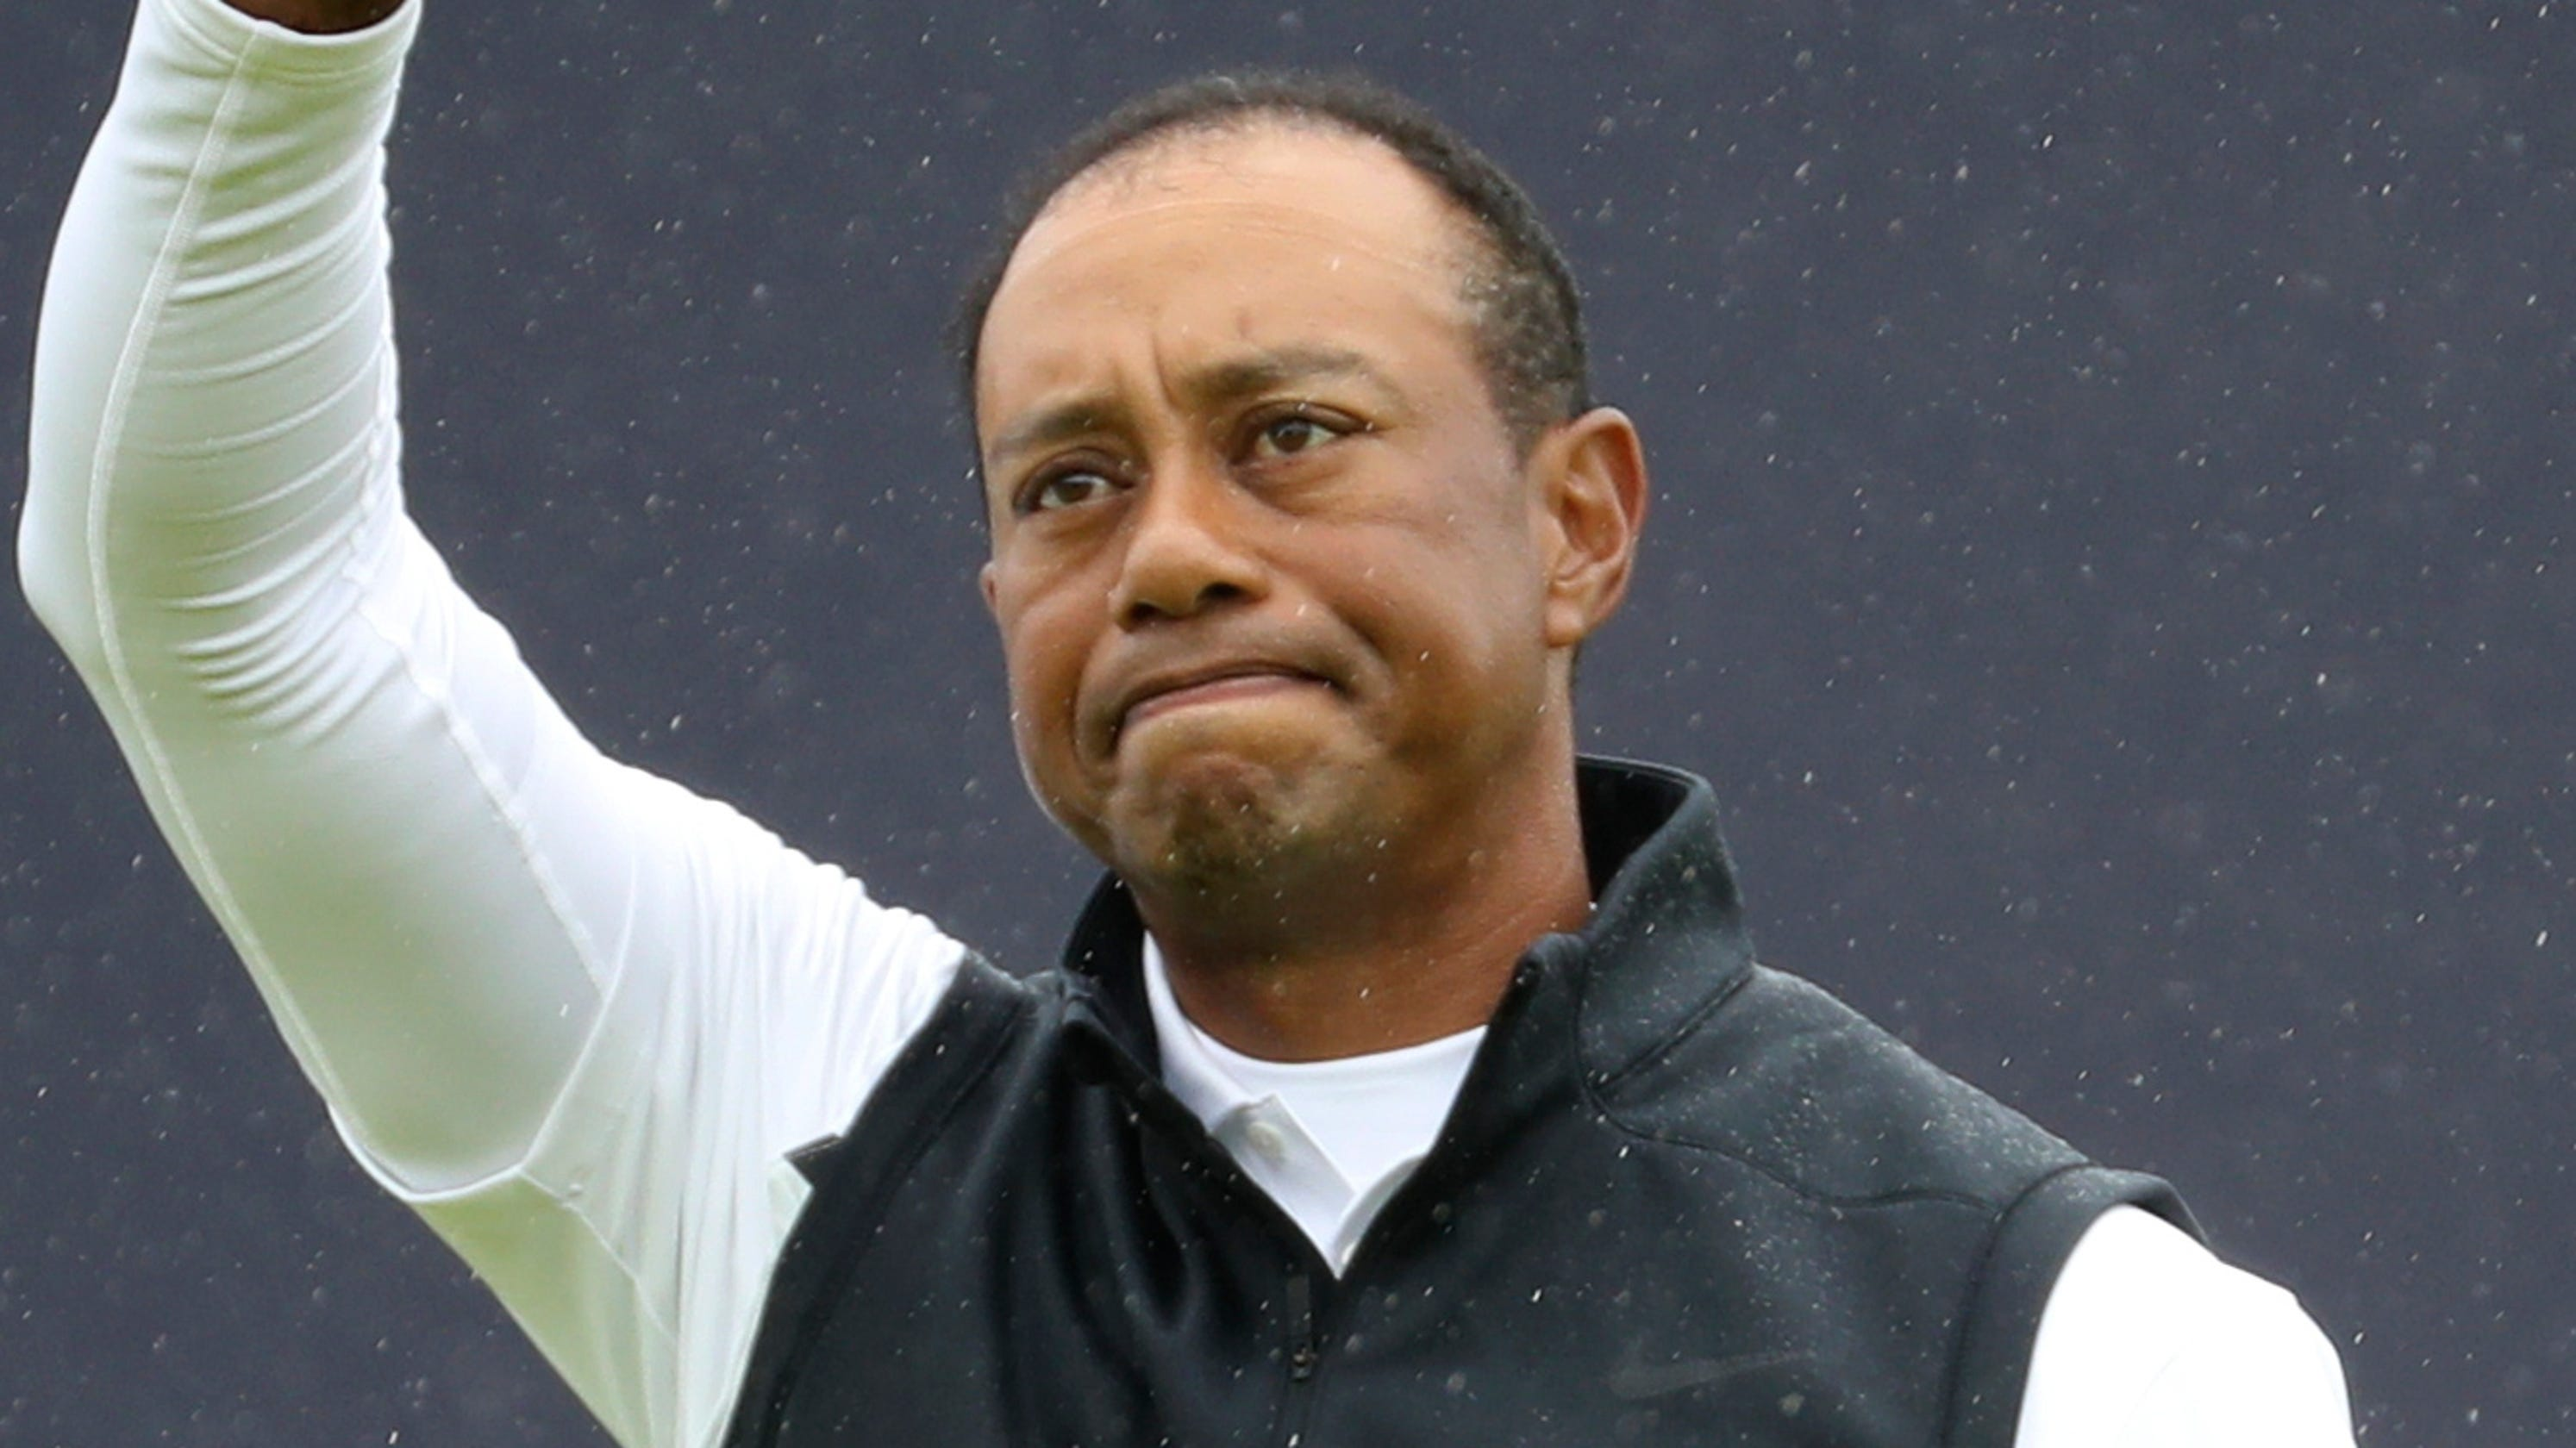 Opinion: Tiger Woods misses cut at British Open, and that's just part of the new norm